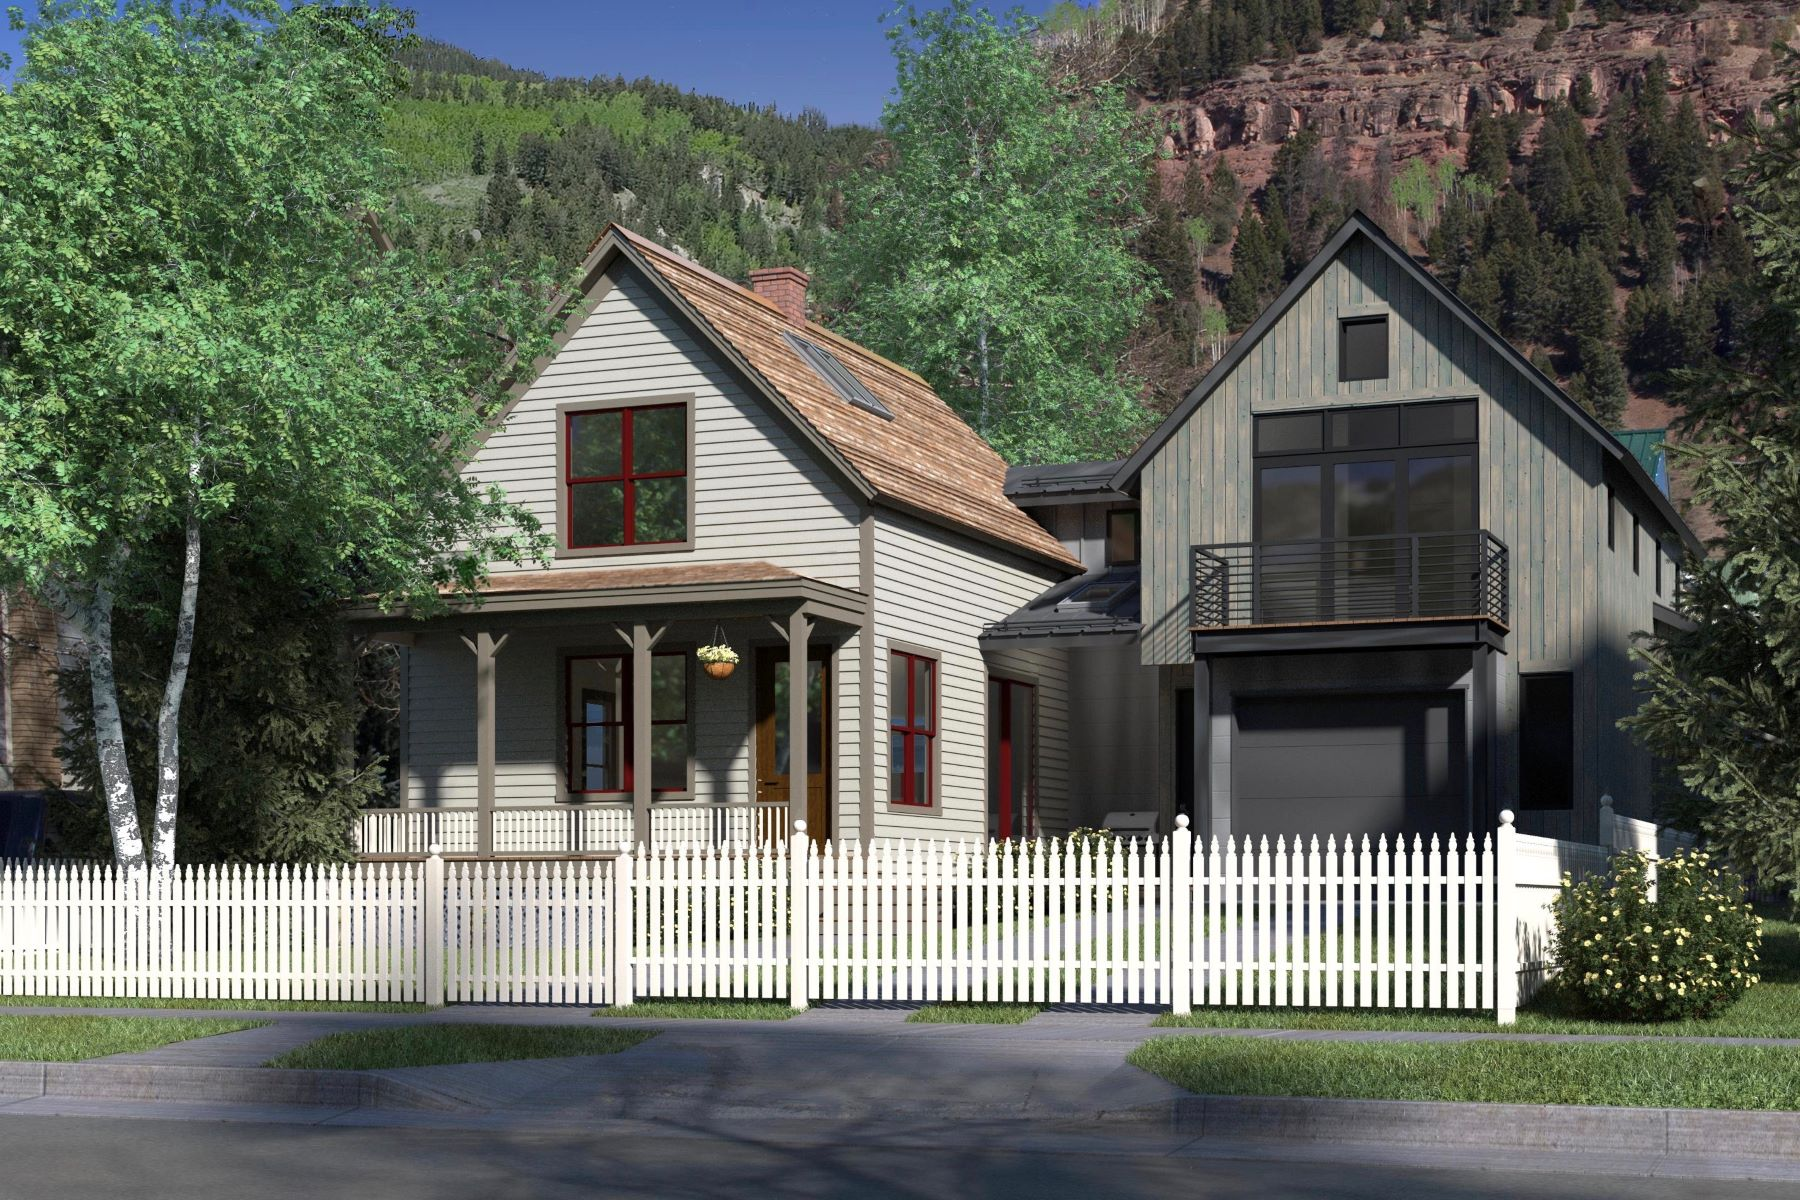 Single Family Home for Active at 547 West Pacific Avenue 547 West Pacific Avenue Telluride, Colorado 81435 United States